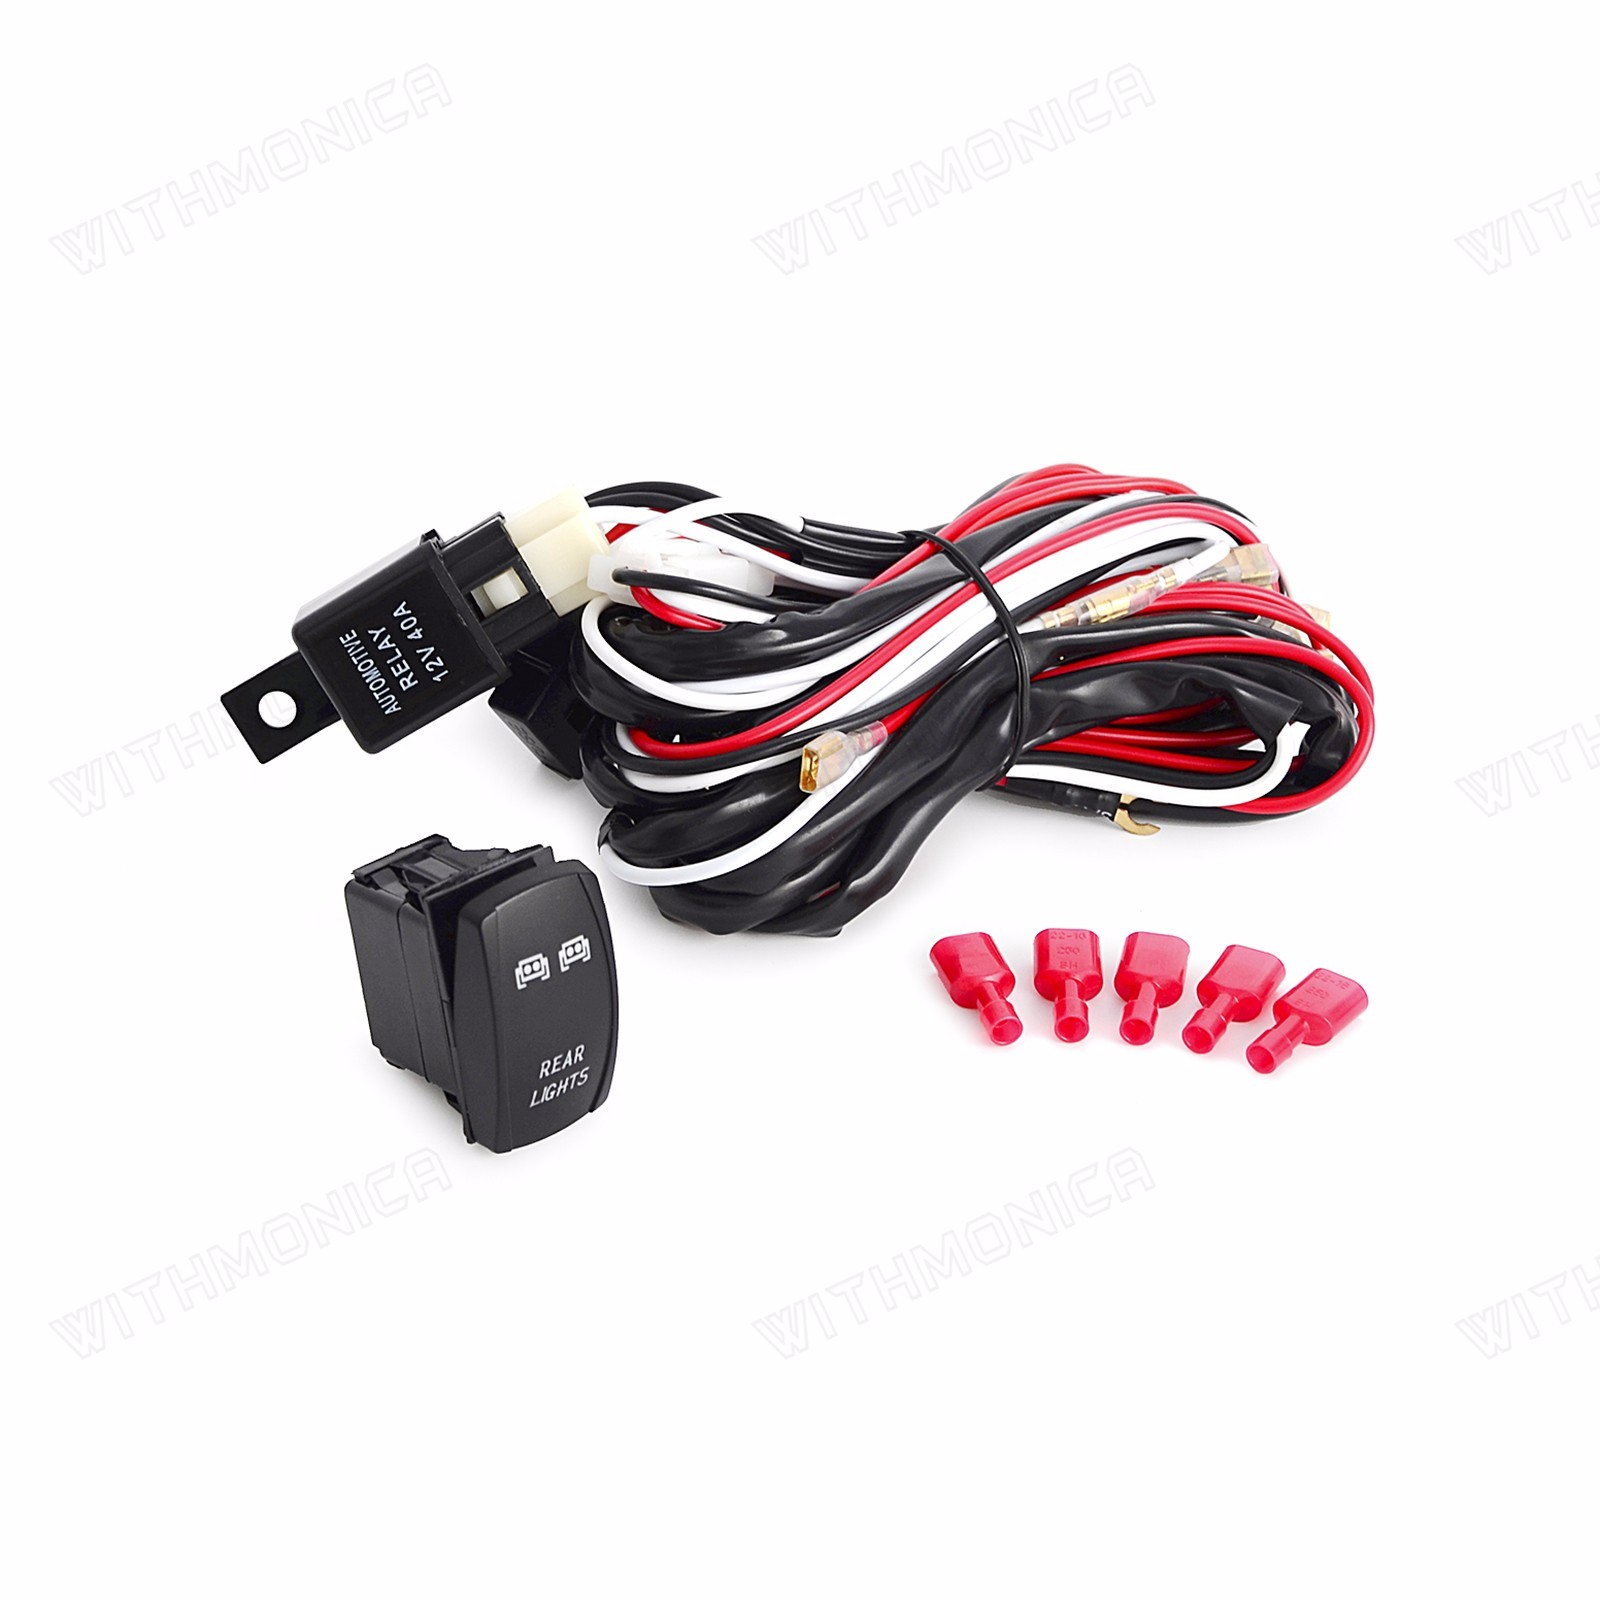 hight resolution of details about 2m wiring harness blue rear led light bar laser rocker switch 12v dc 5pin utv